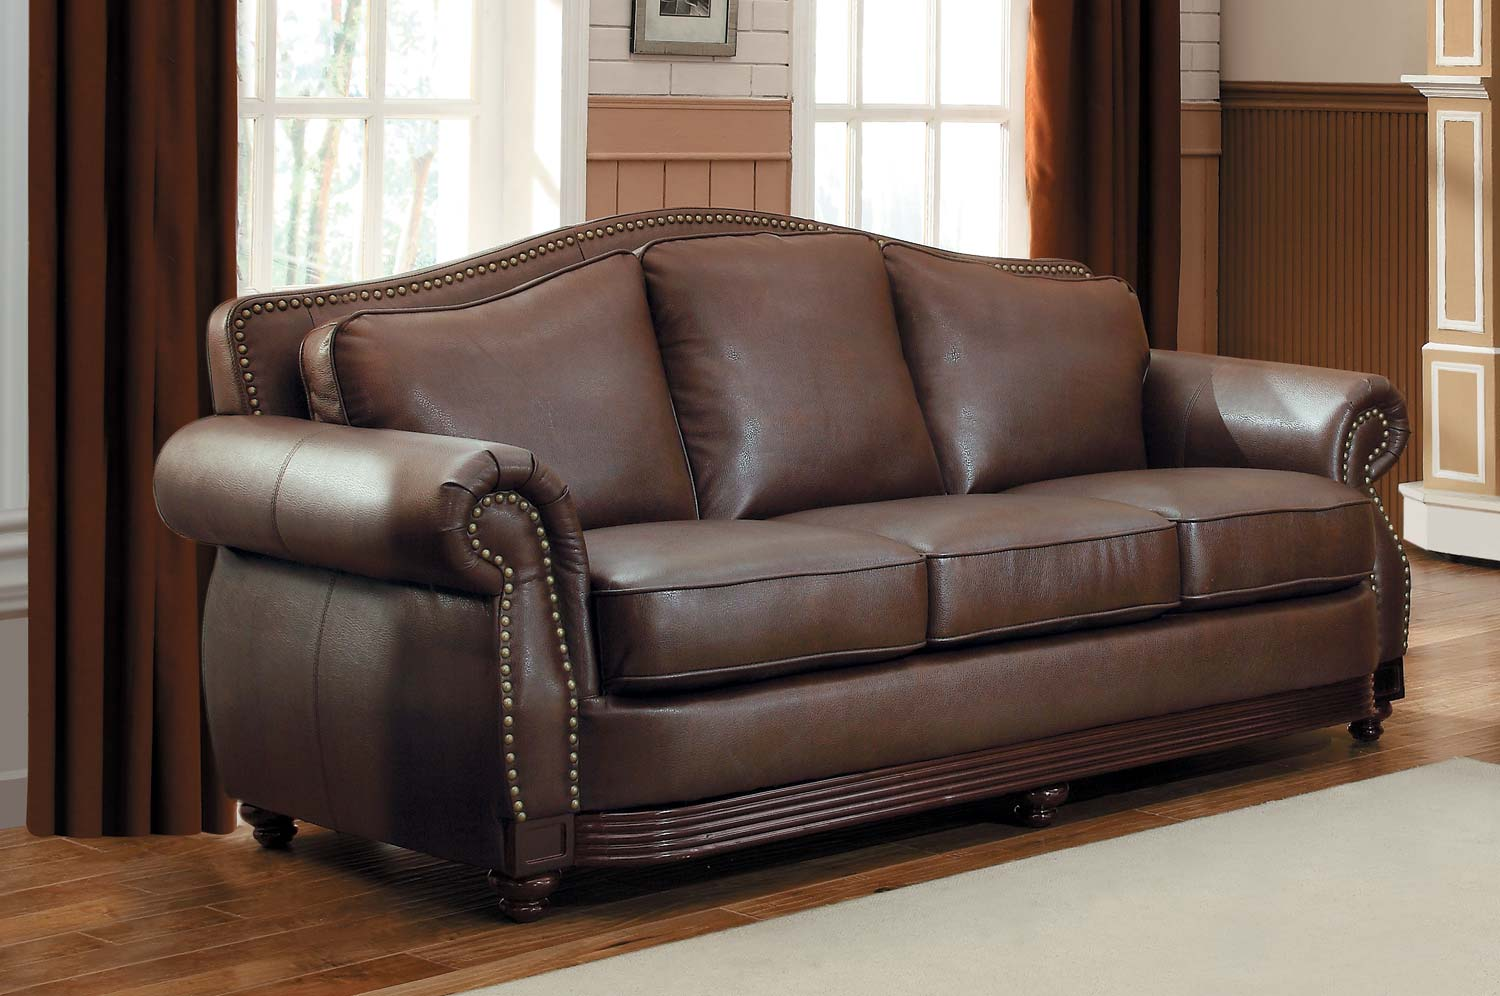 Homelegance Midwood Bonded Leather Sofa - Dark Brown 9616BRW-3 |  Traveller Location